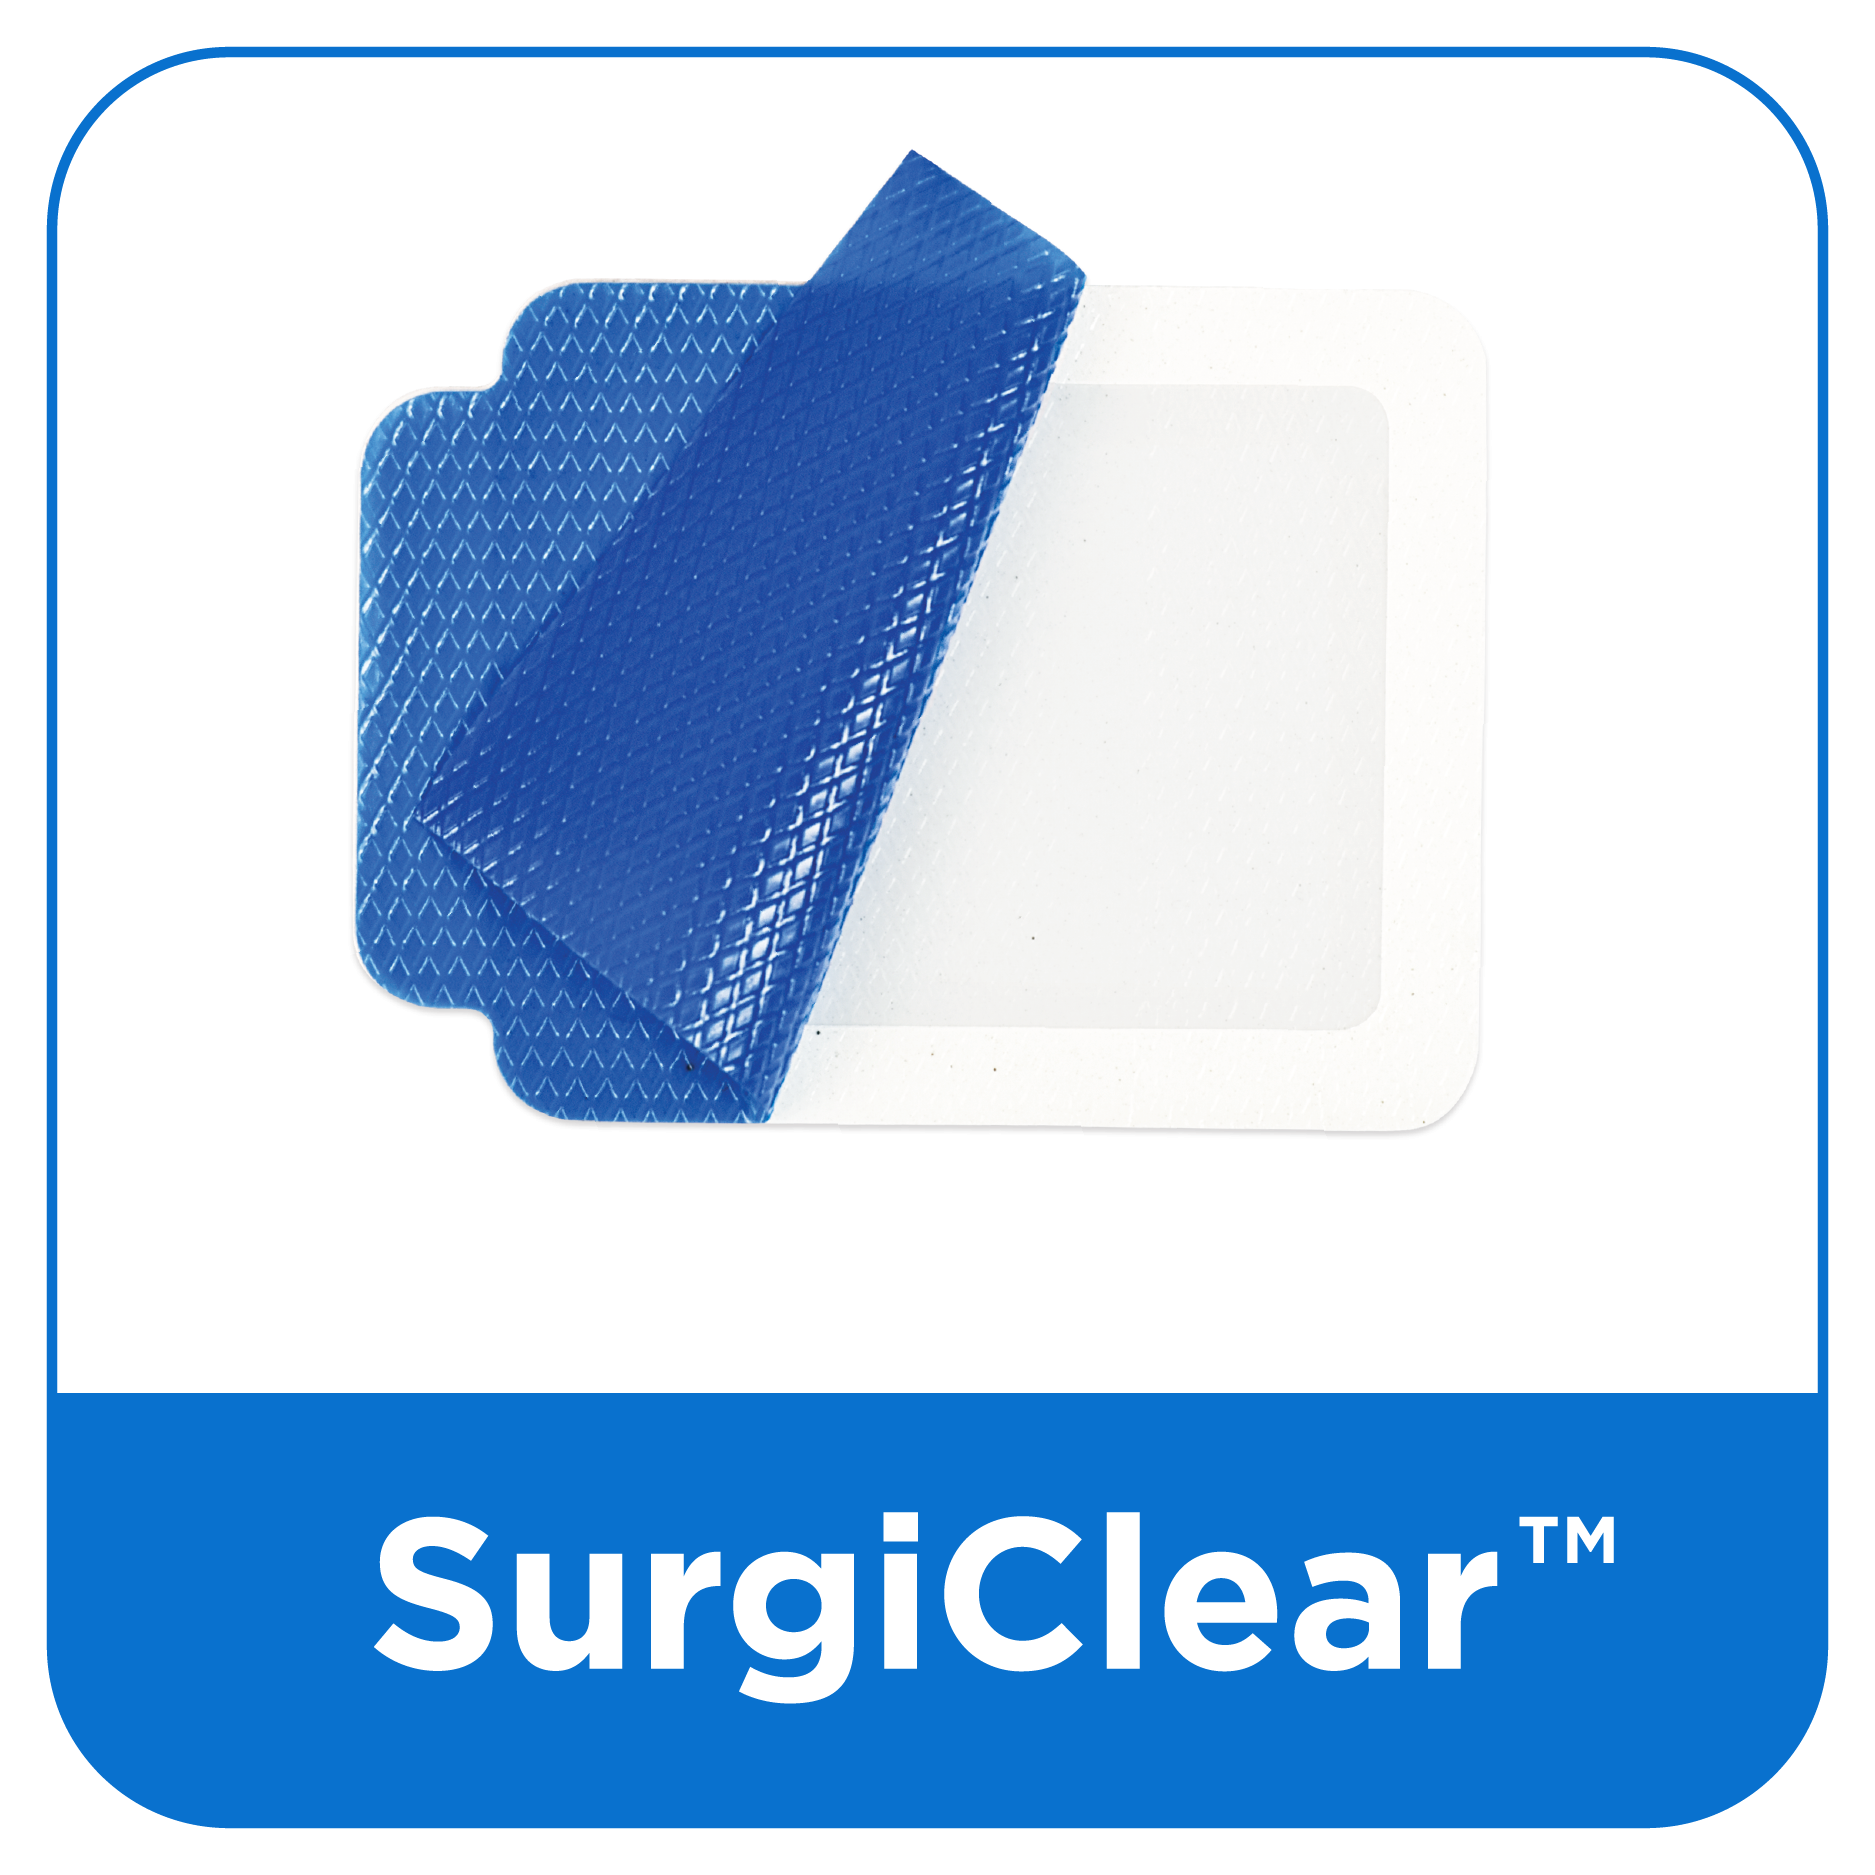 SurgiClear.png